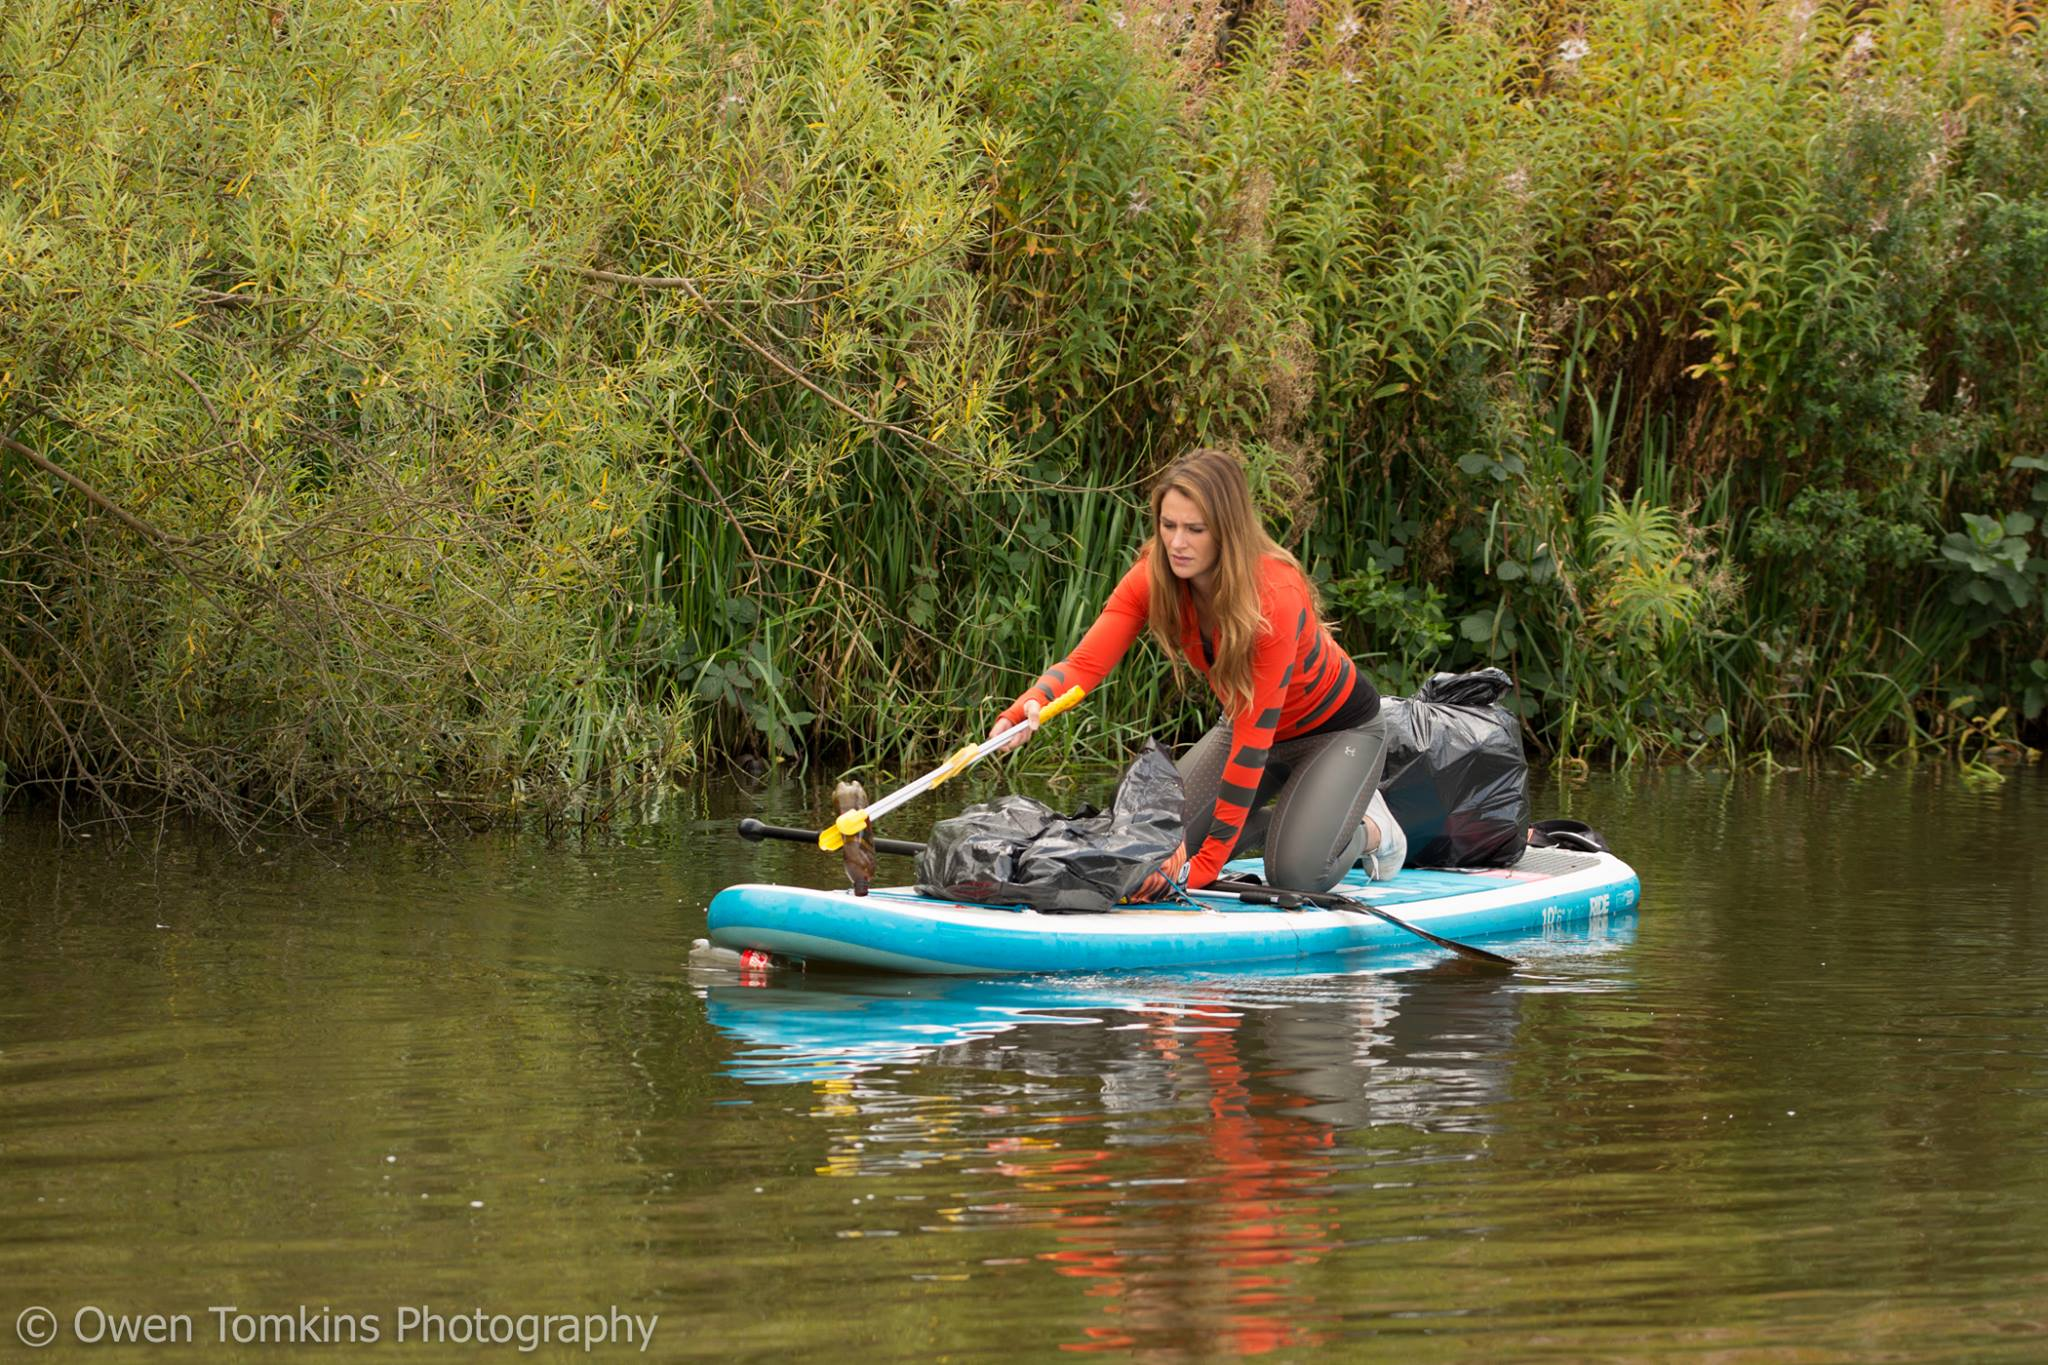 Plastic in rivers and canals